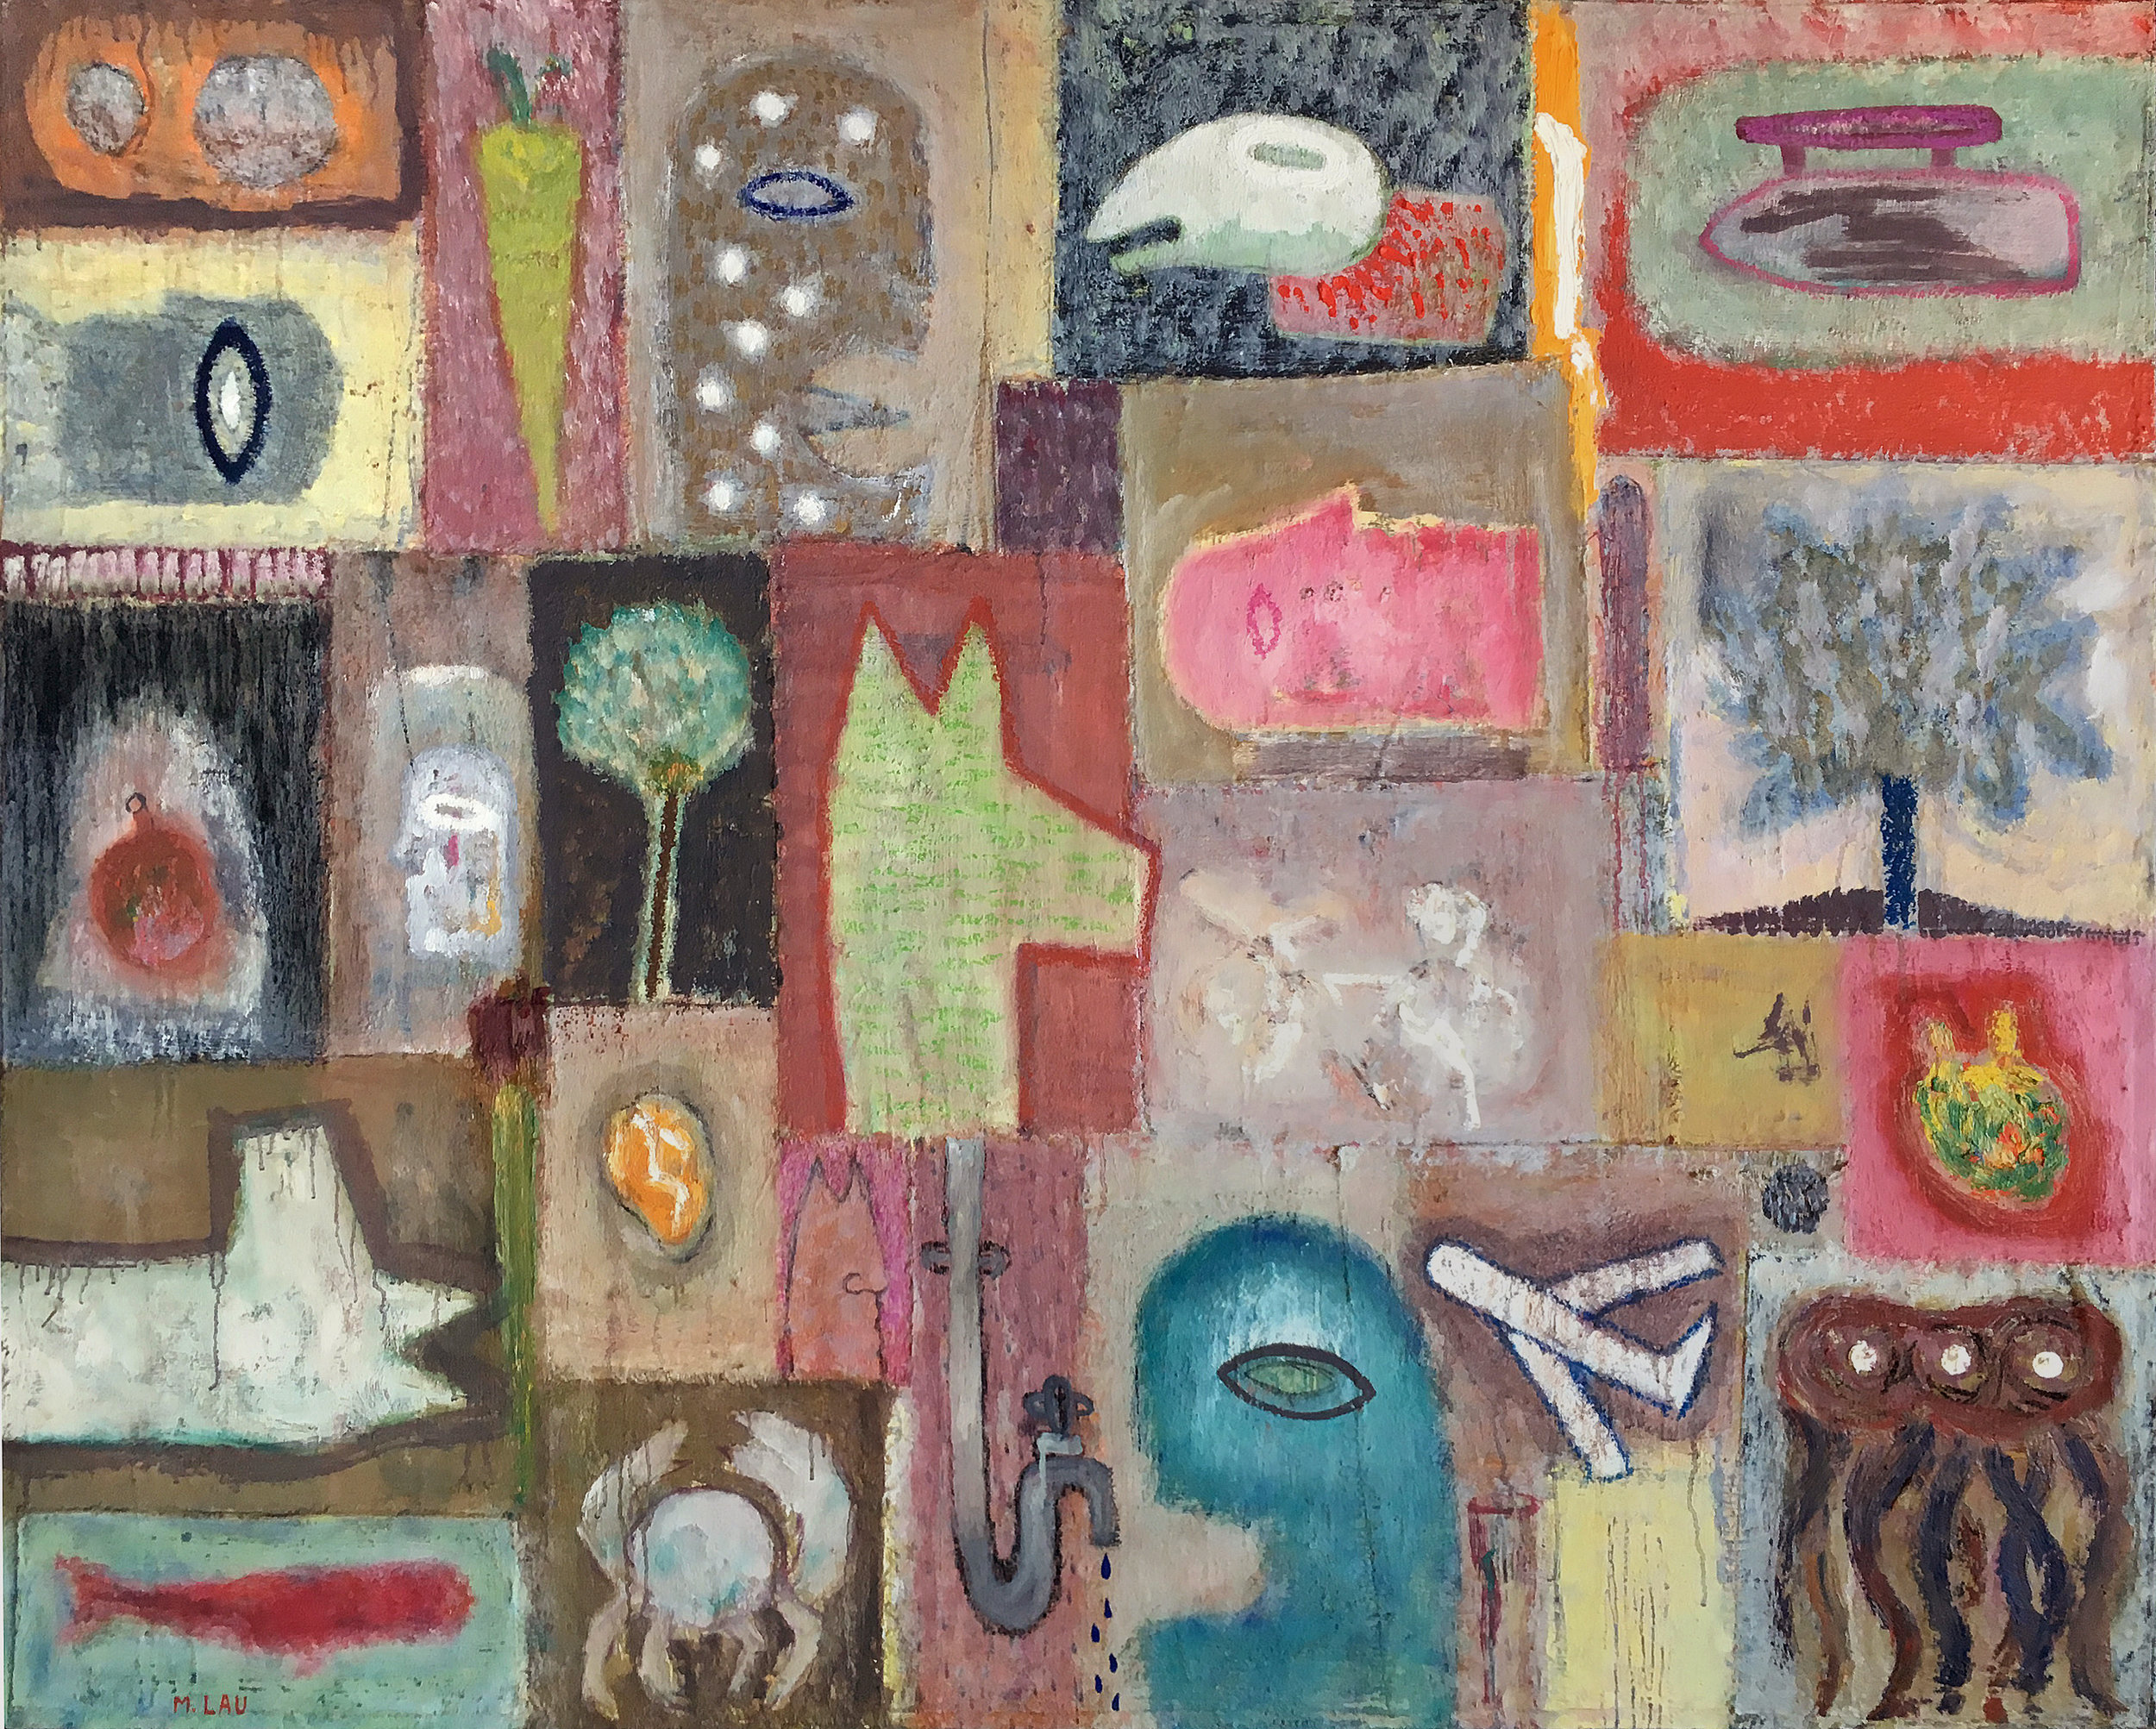 Epoca VIII, 2011, 60 x 48 inches, Oil on canvas, mounted on board